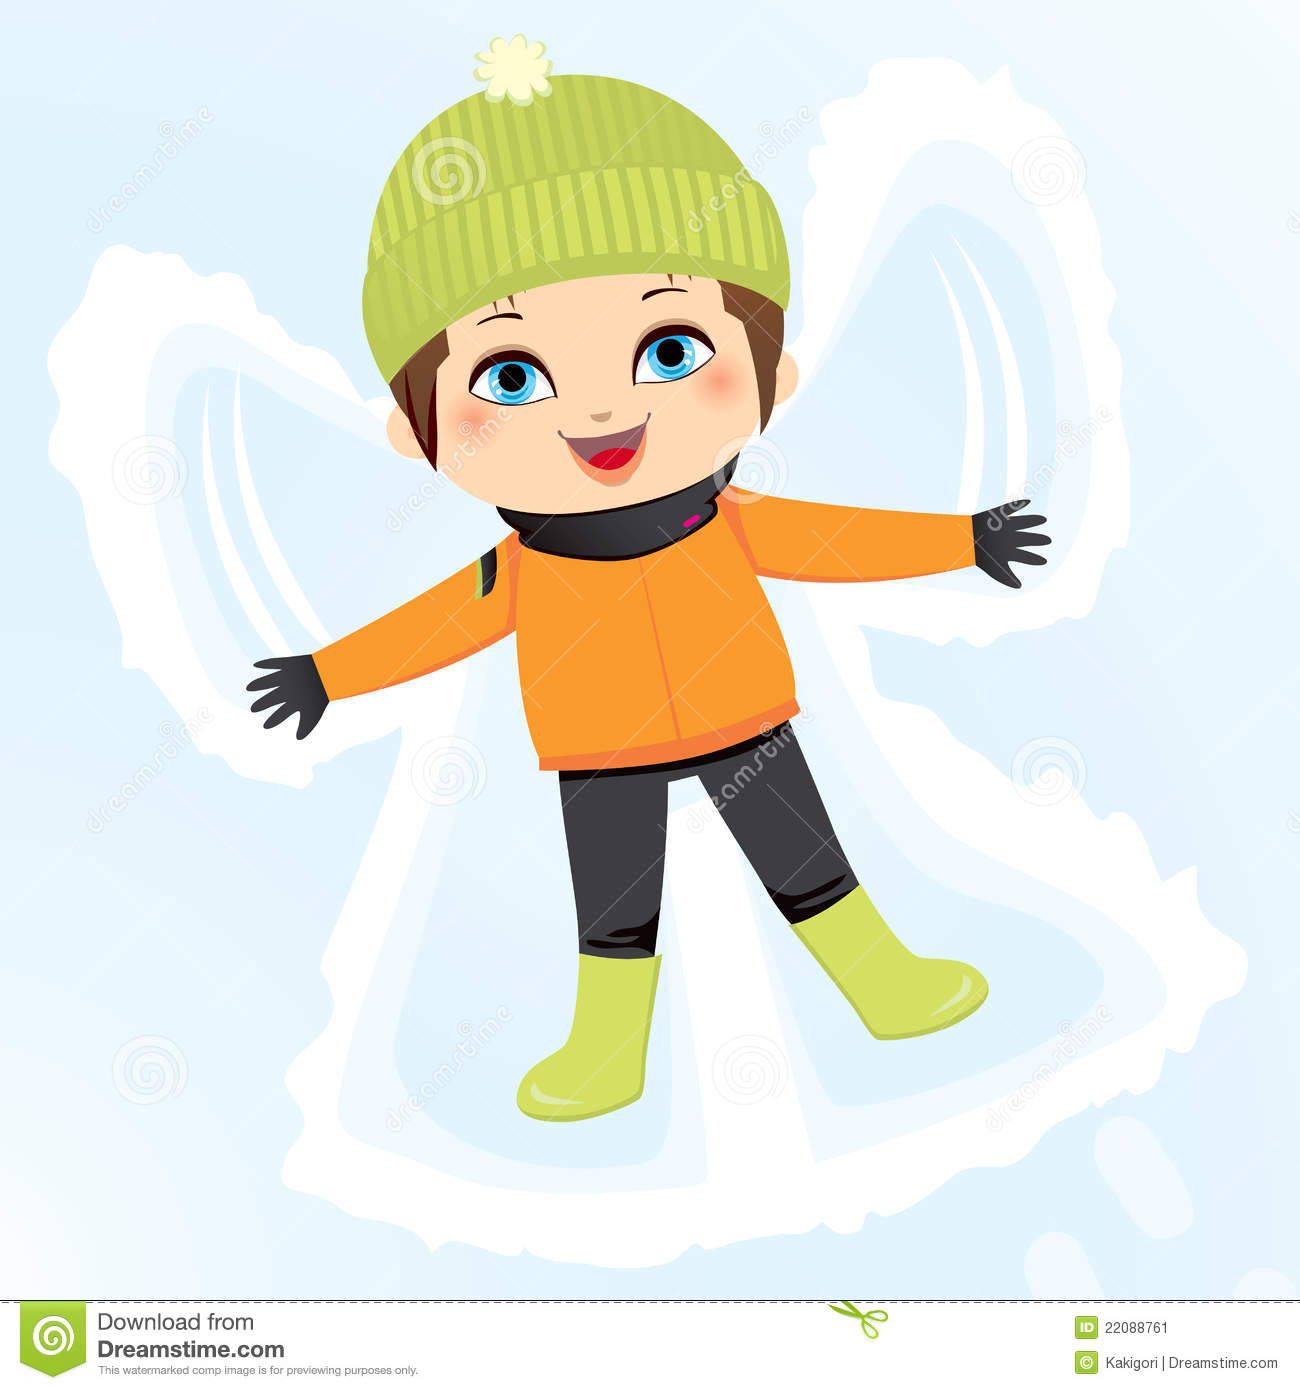 Animal making snow angels clipart.